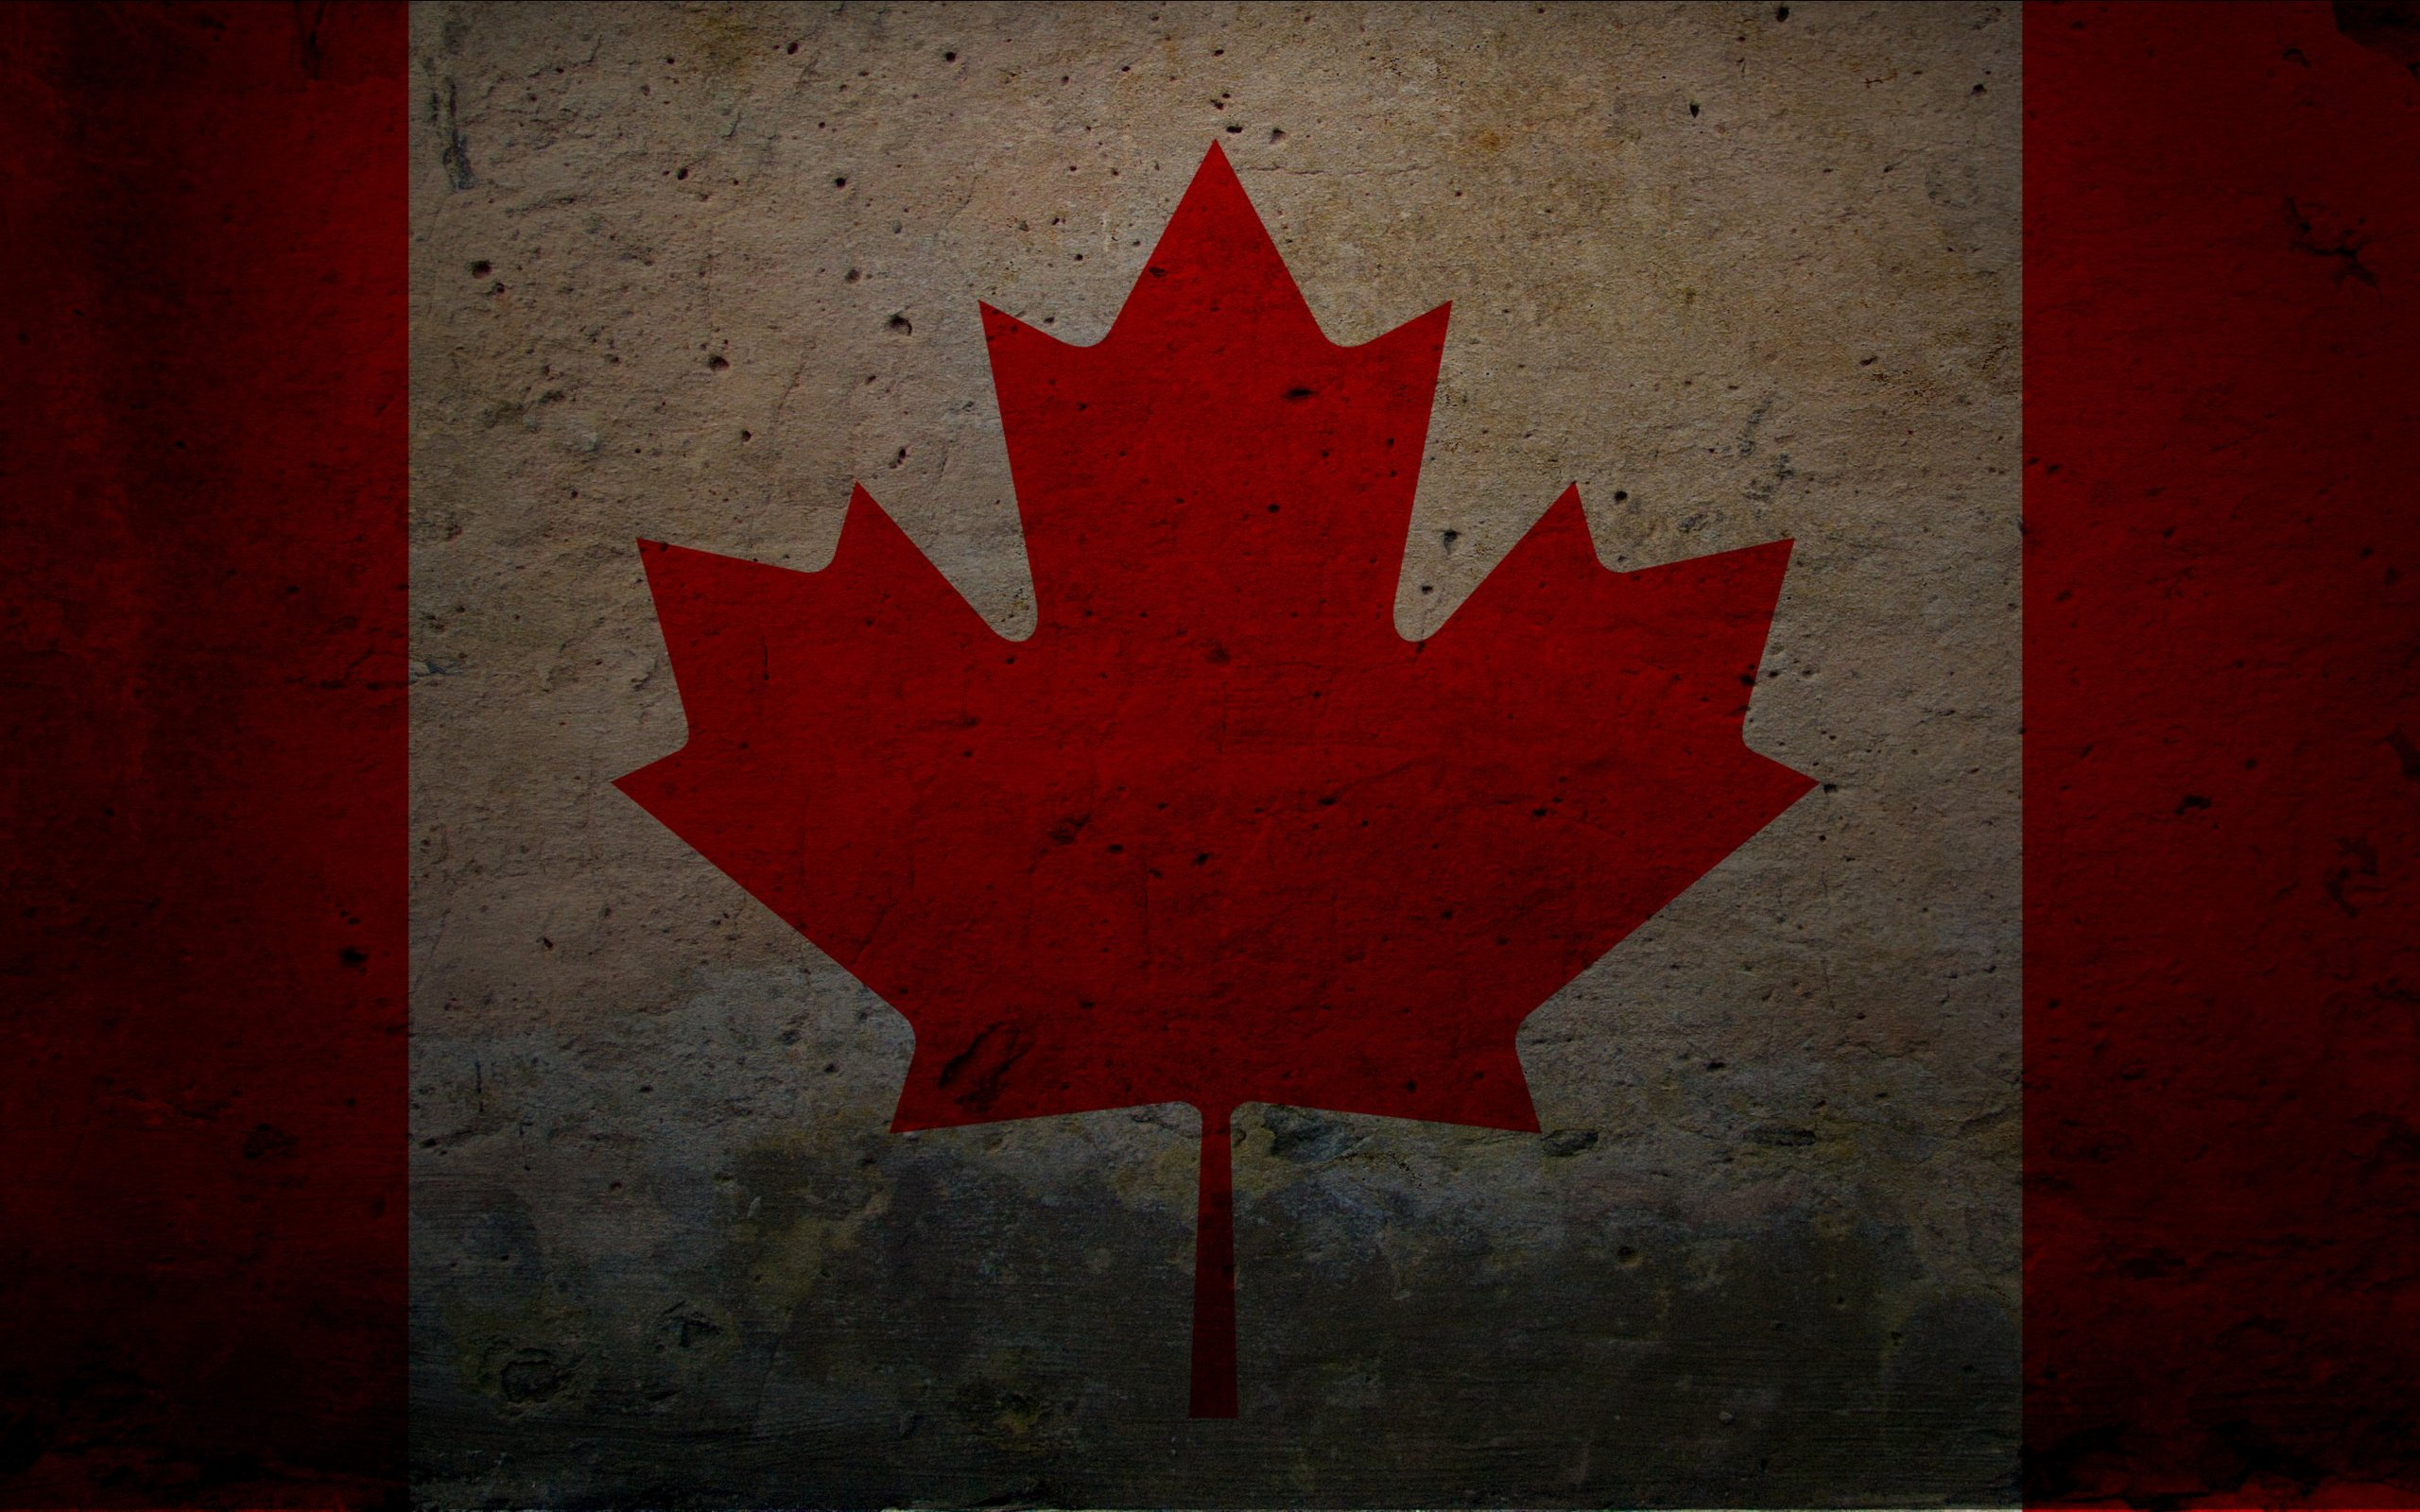 canadian flag wallpaper for iphone 6